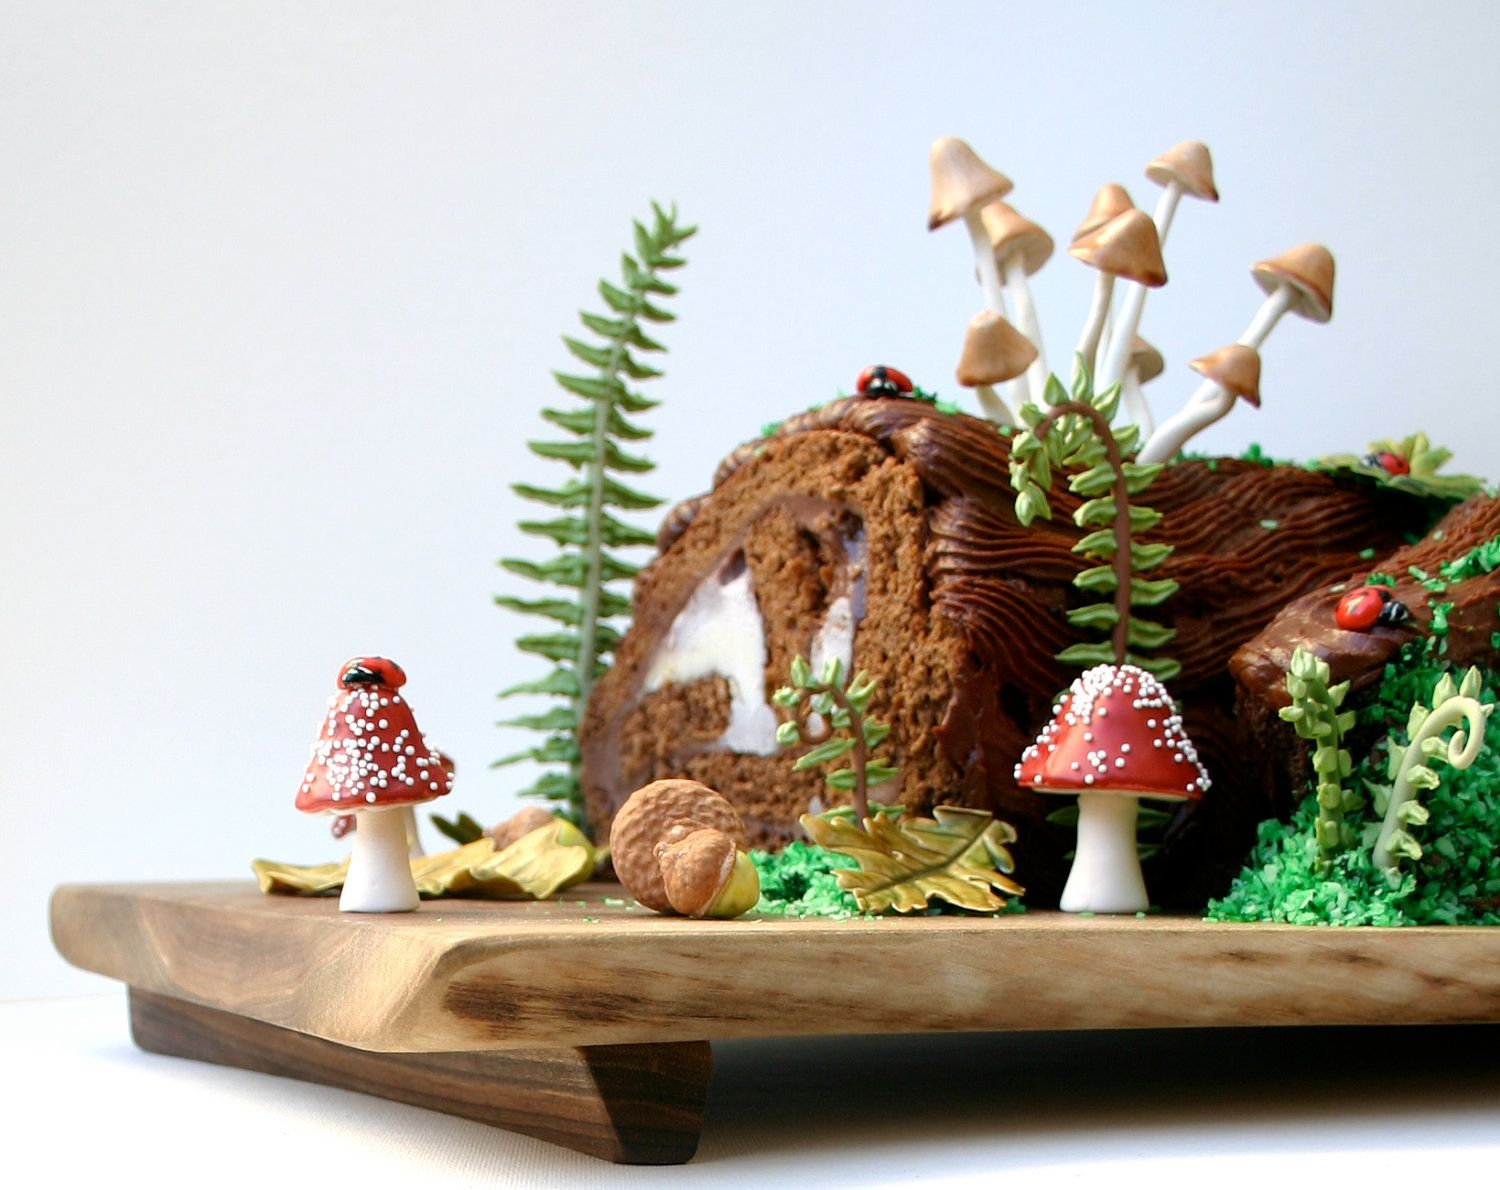 Diy Woodland Cake Decorating Set Make This Cake And Eat It Too